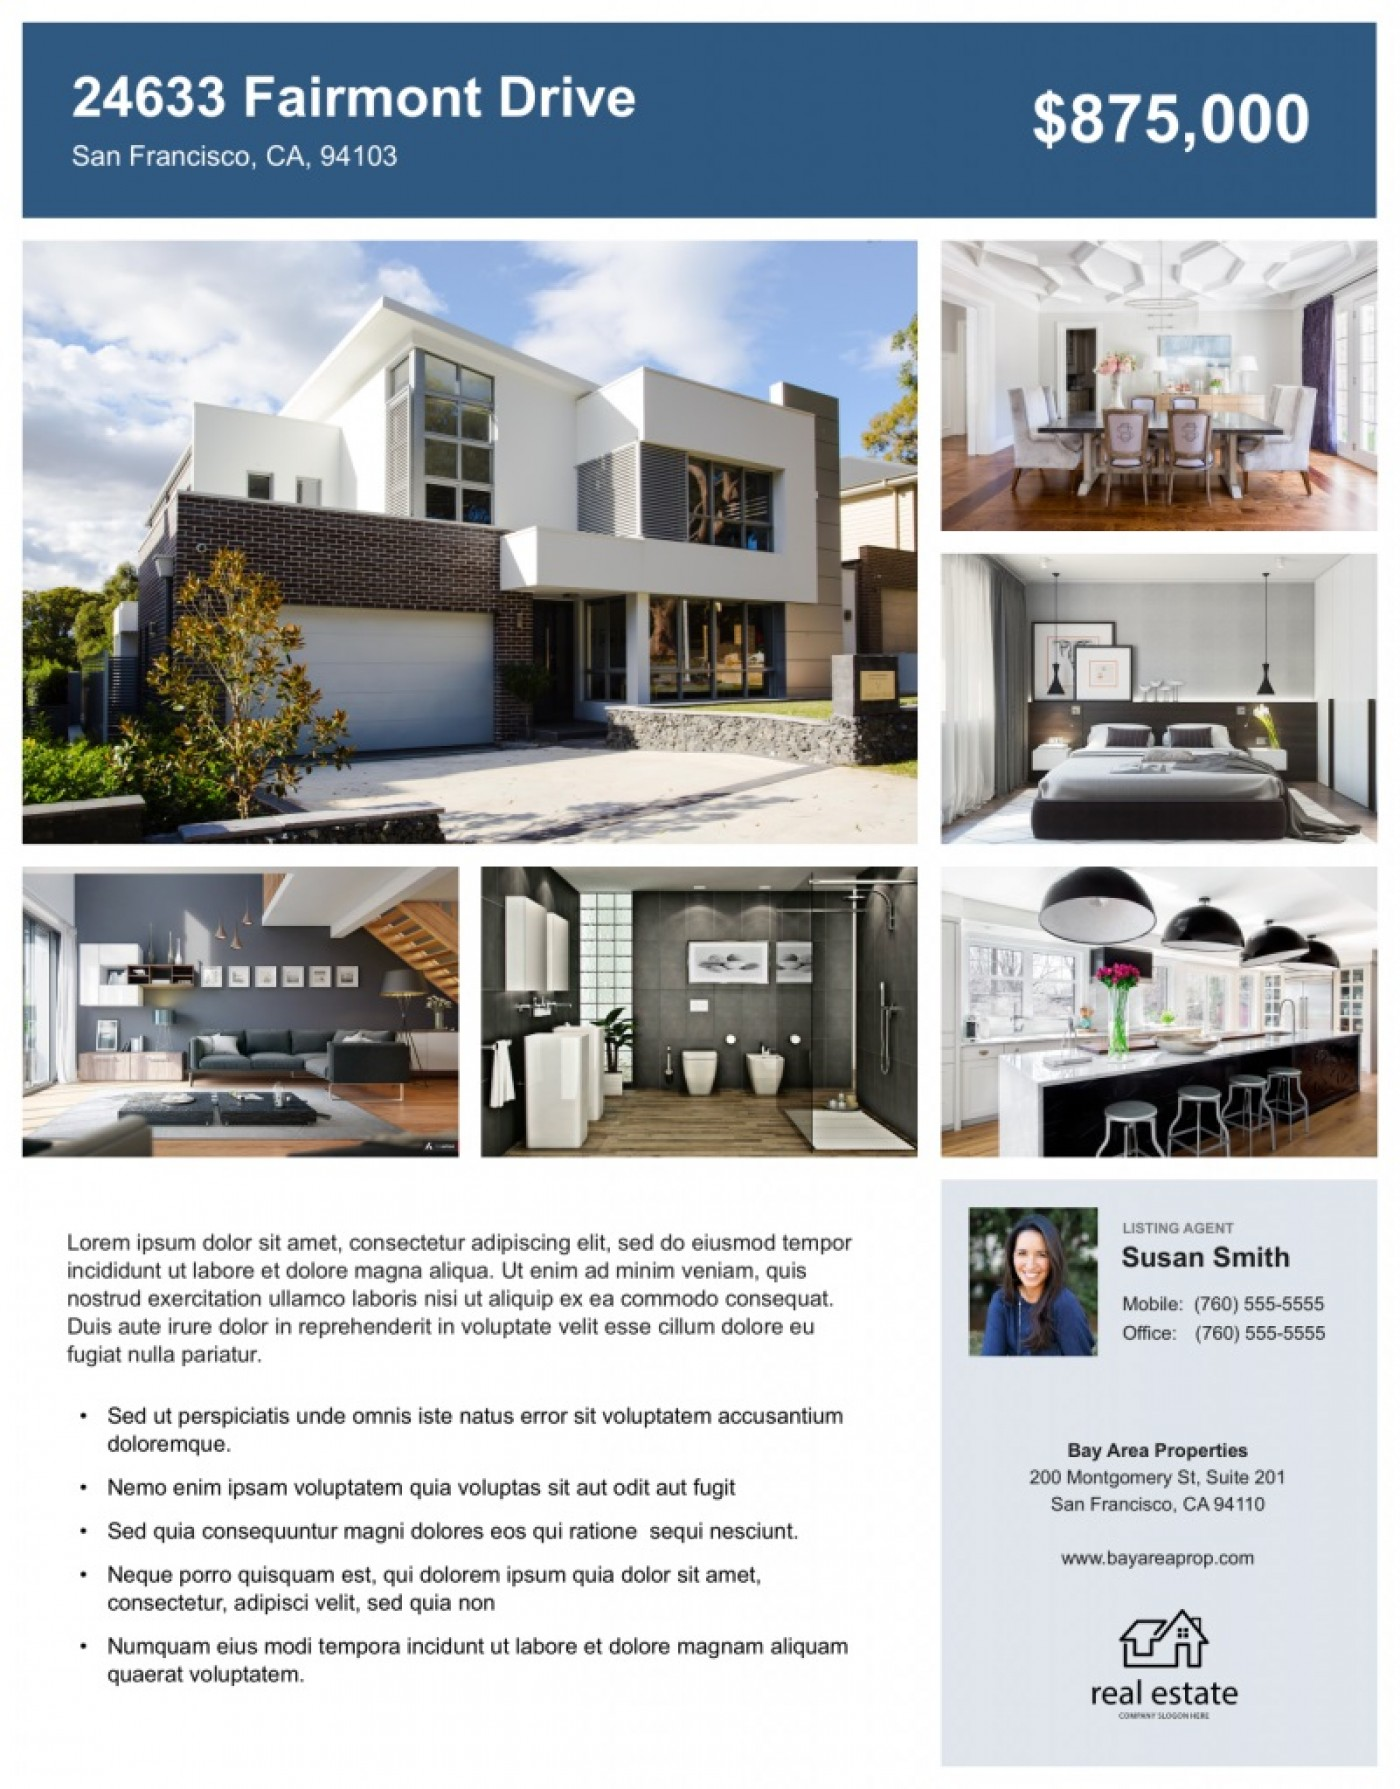 006 Unique Real Estate Advertising Template Example  Newspaper Ad Instagram Craigslist1400